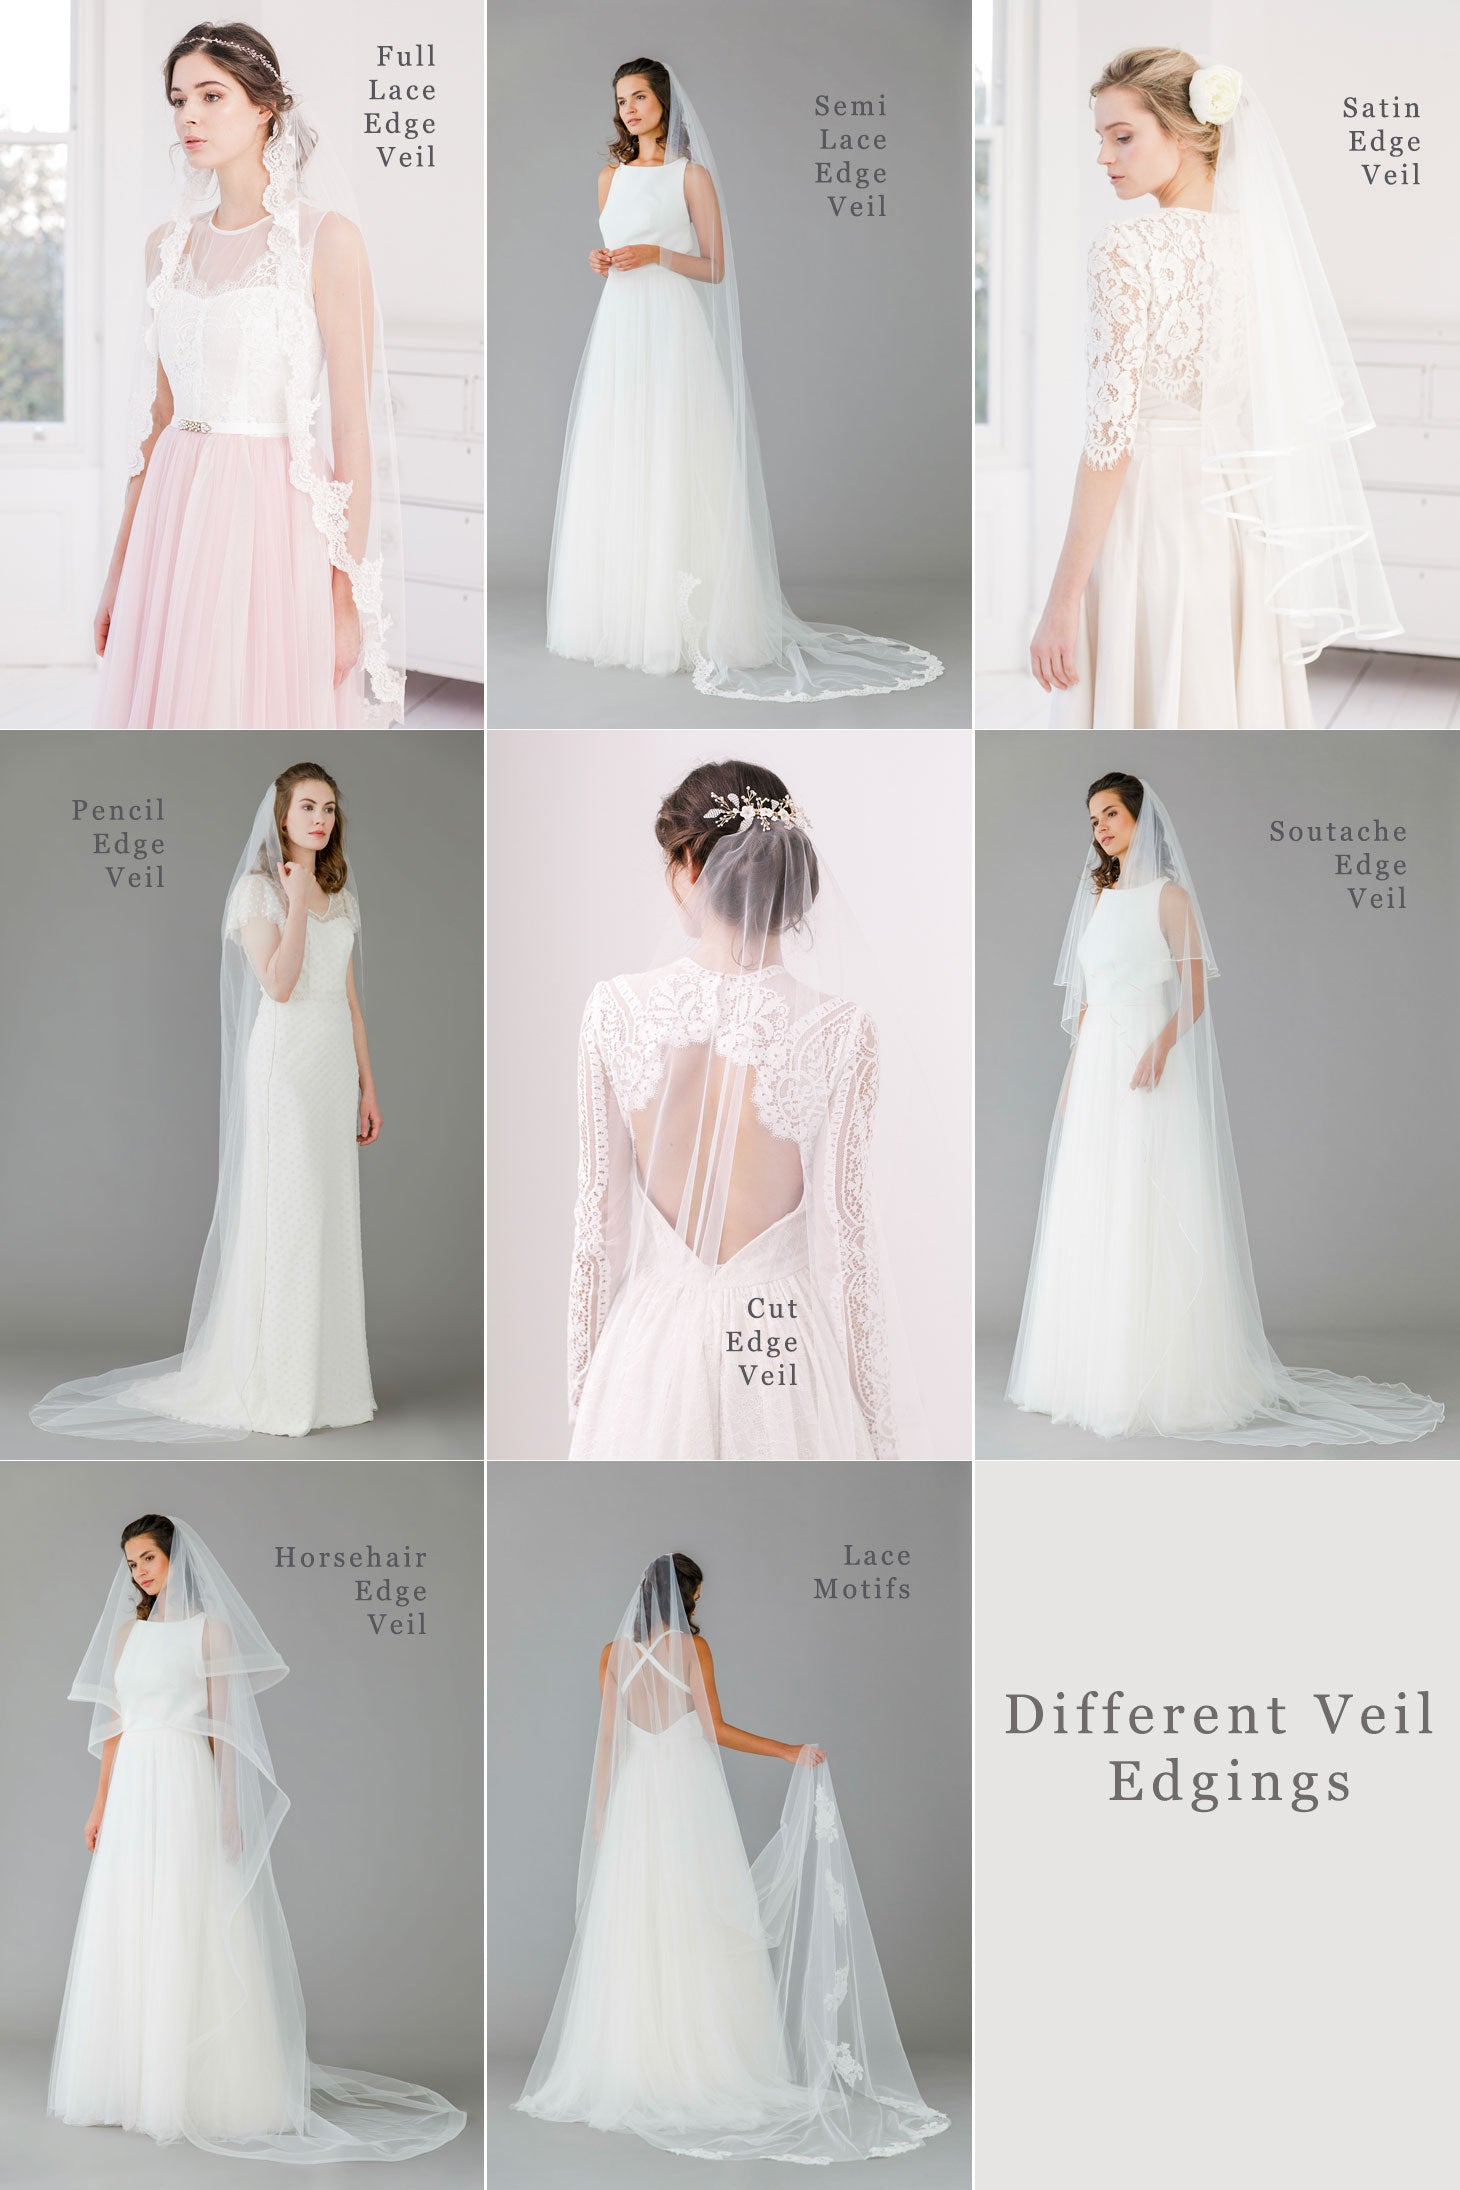 a0e0b5ddc8977c what are the different types of veil edgings available